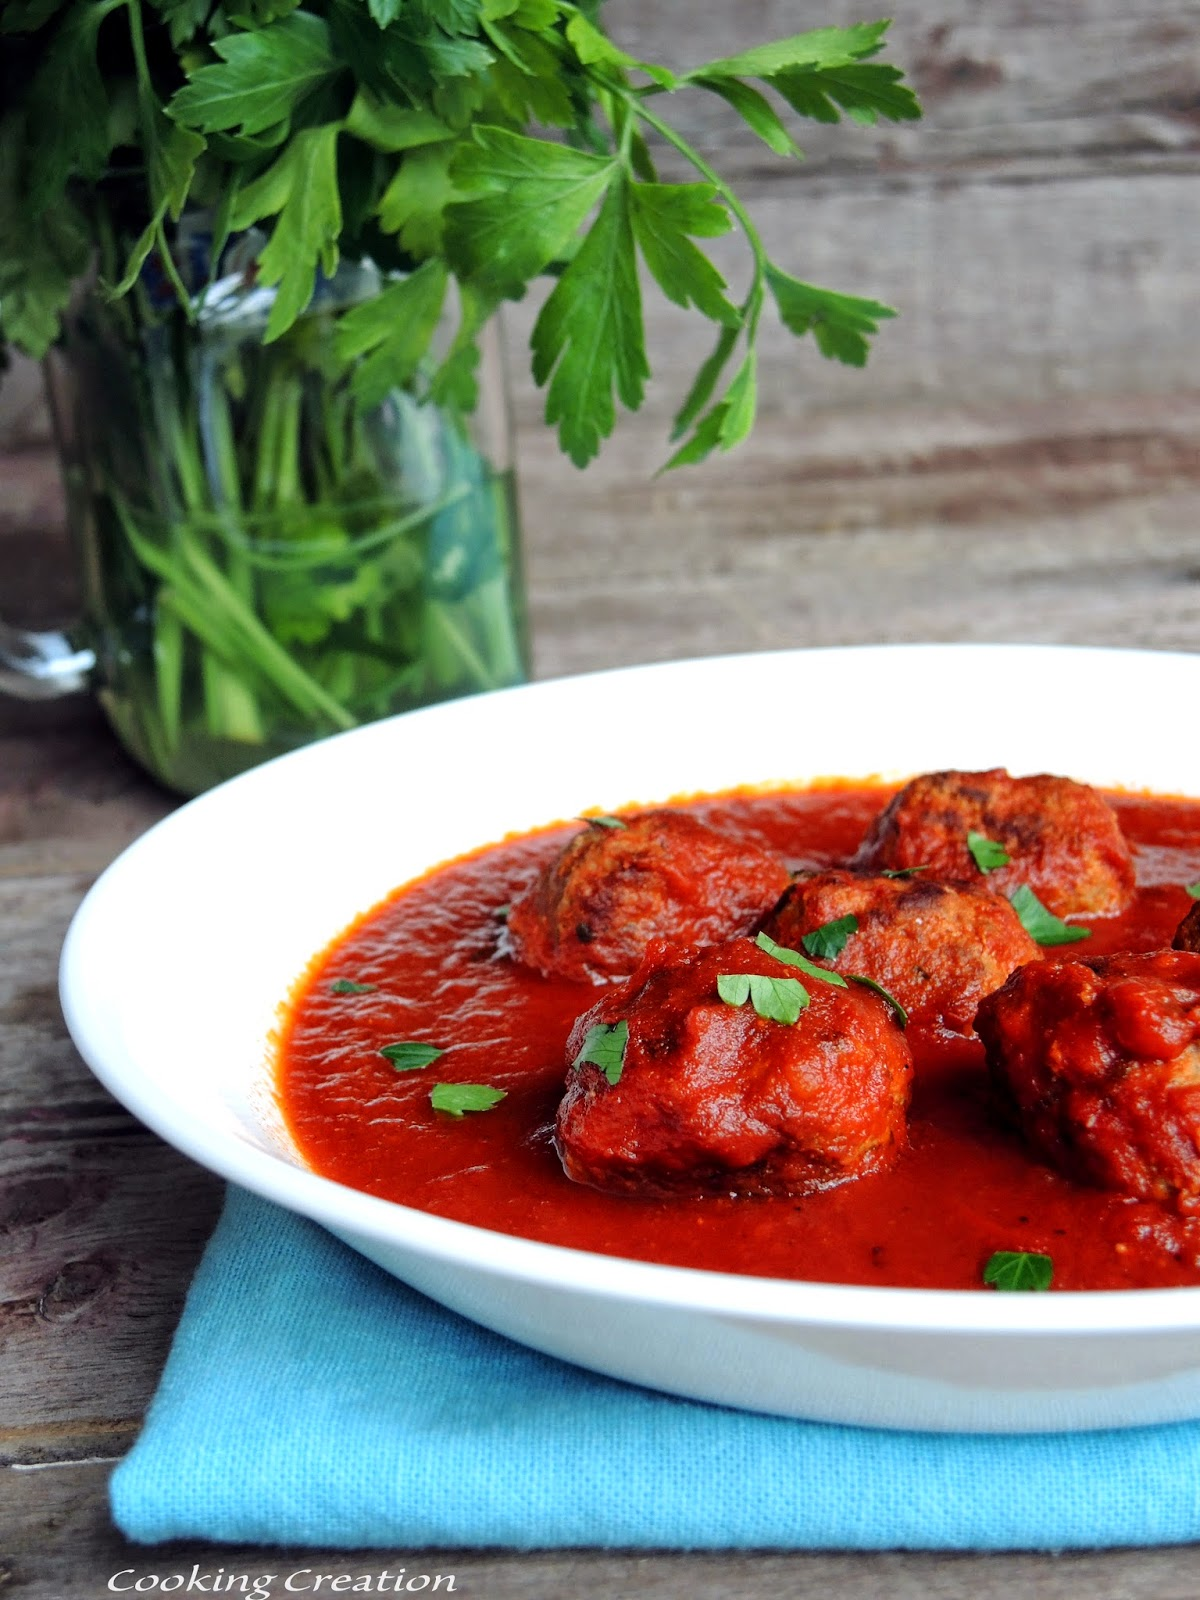 Cooking Creation Our Favorite Juicy Italian Meatballs